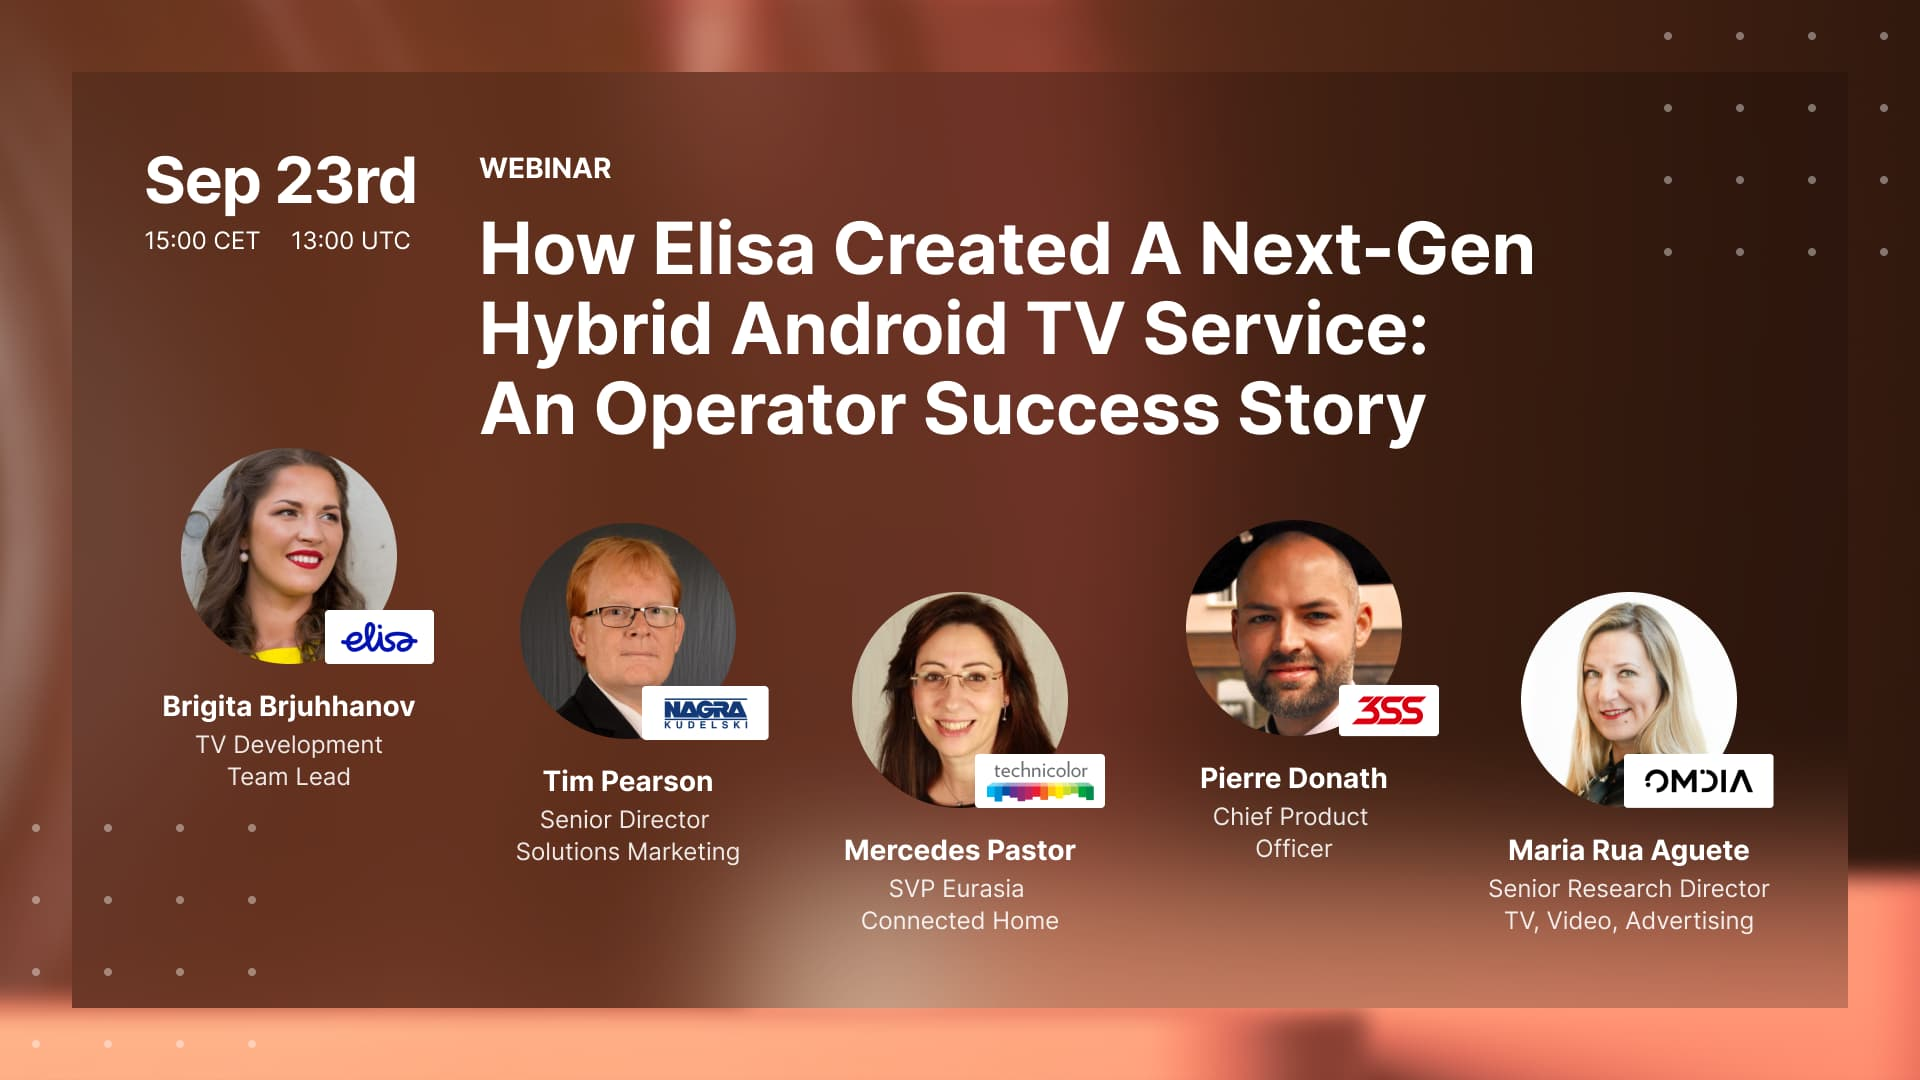 How Elisa Created a Next-Gen Hybrid Android TV Service: An Operator Success Story